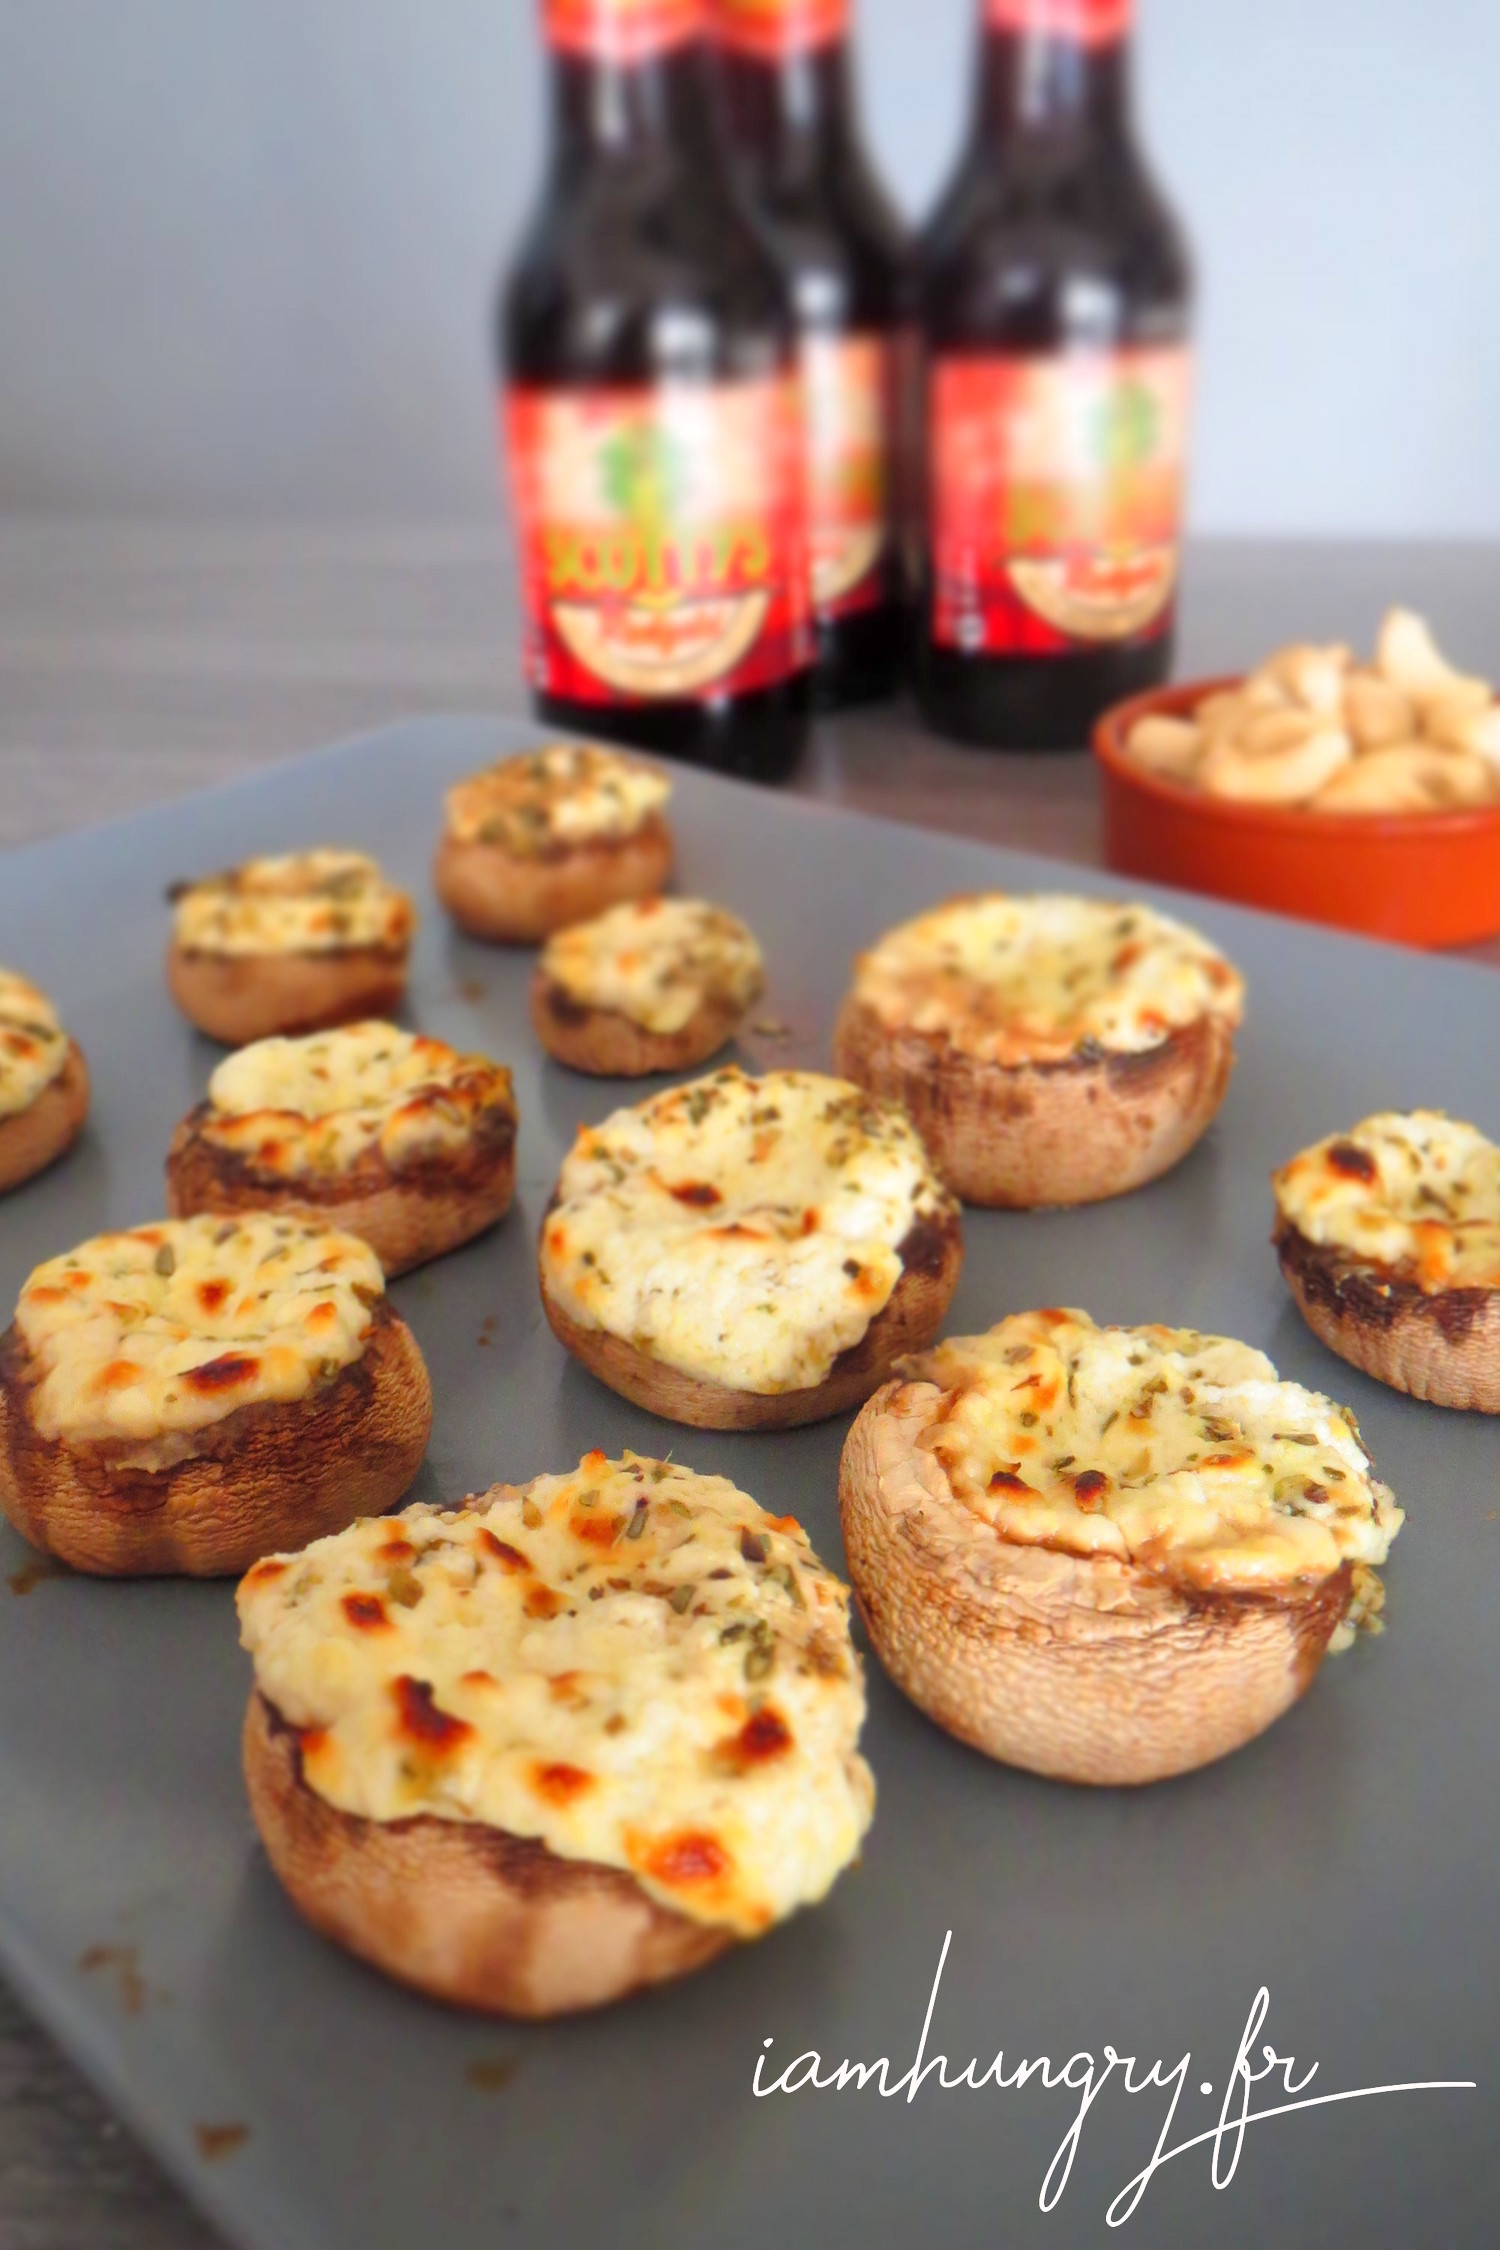 Stuffed mushrooms with goat cheese and garlic